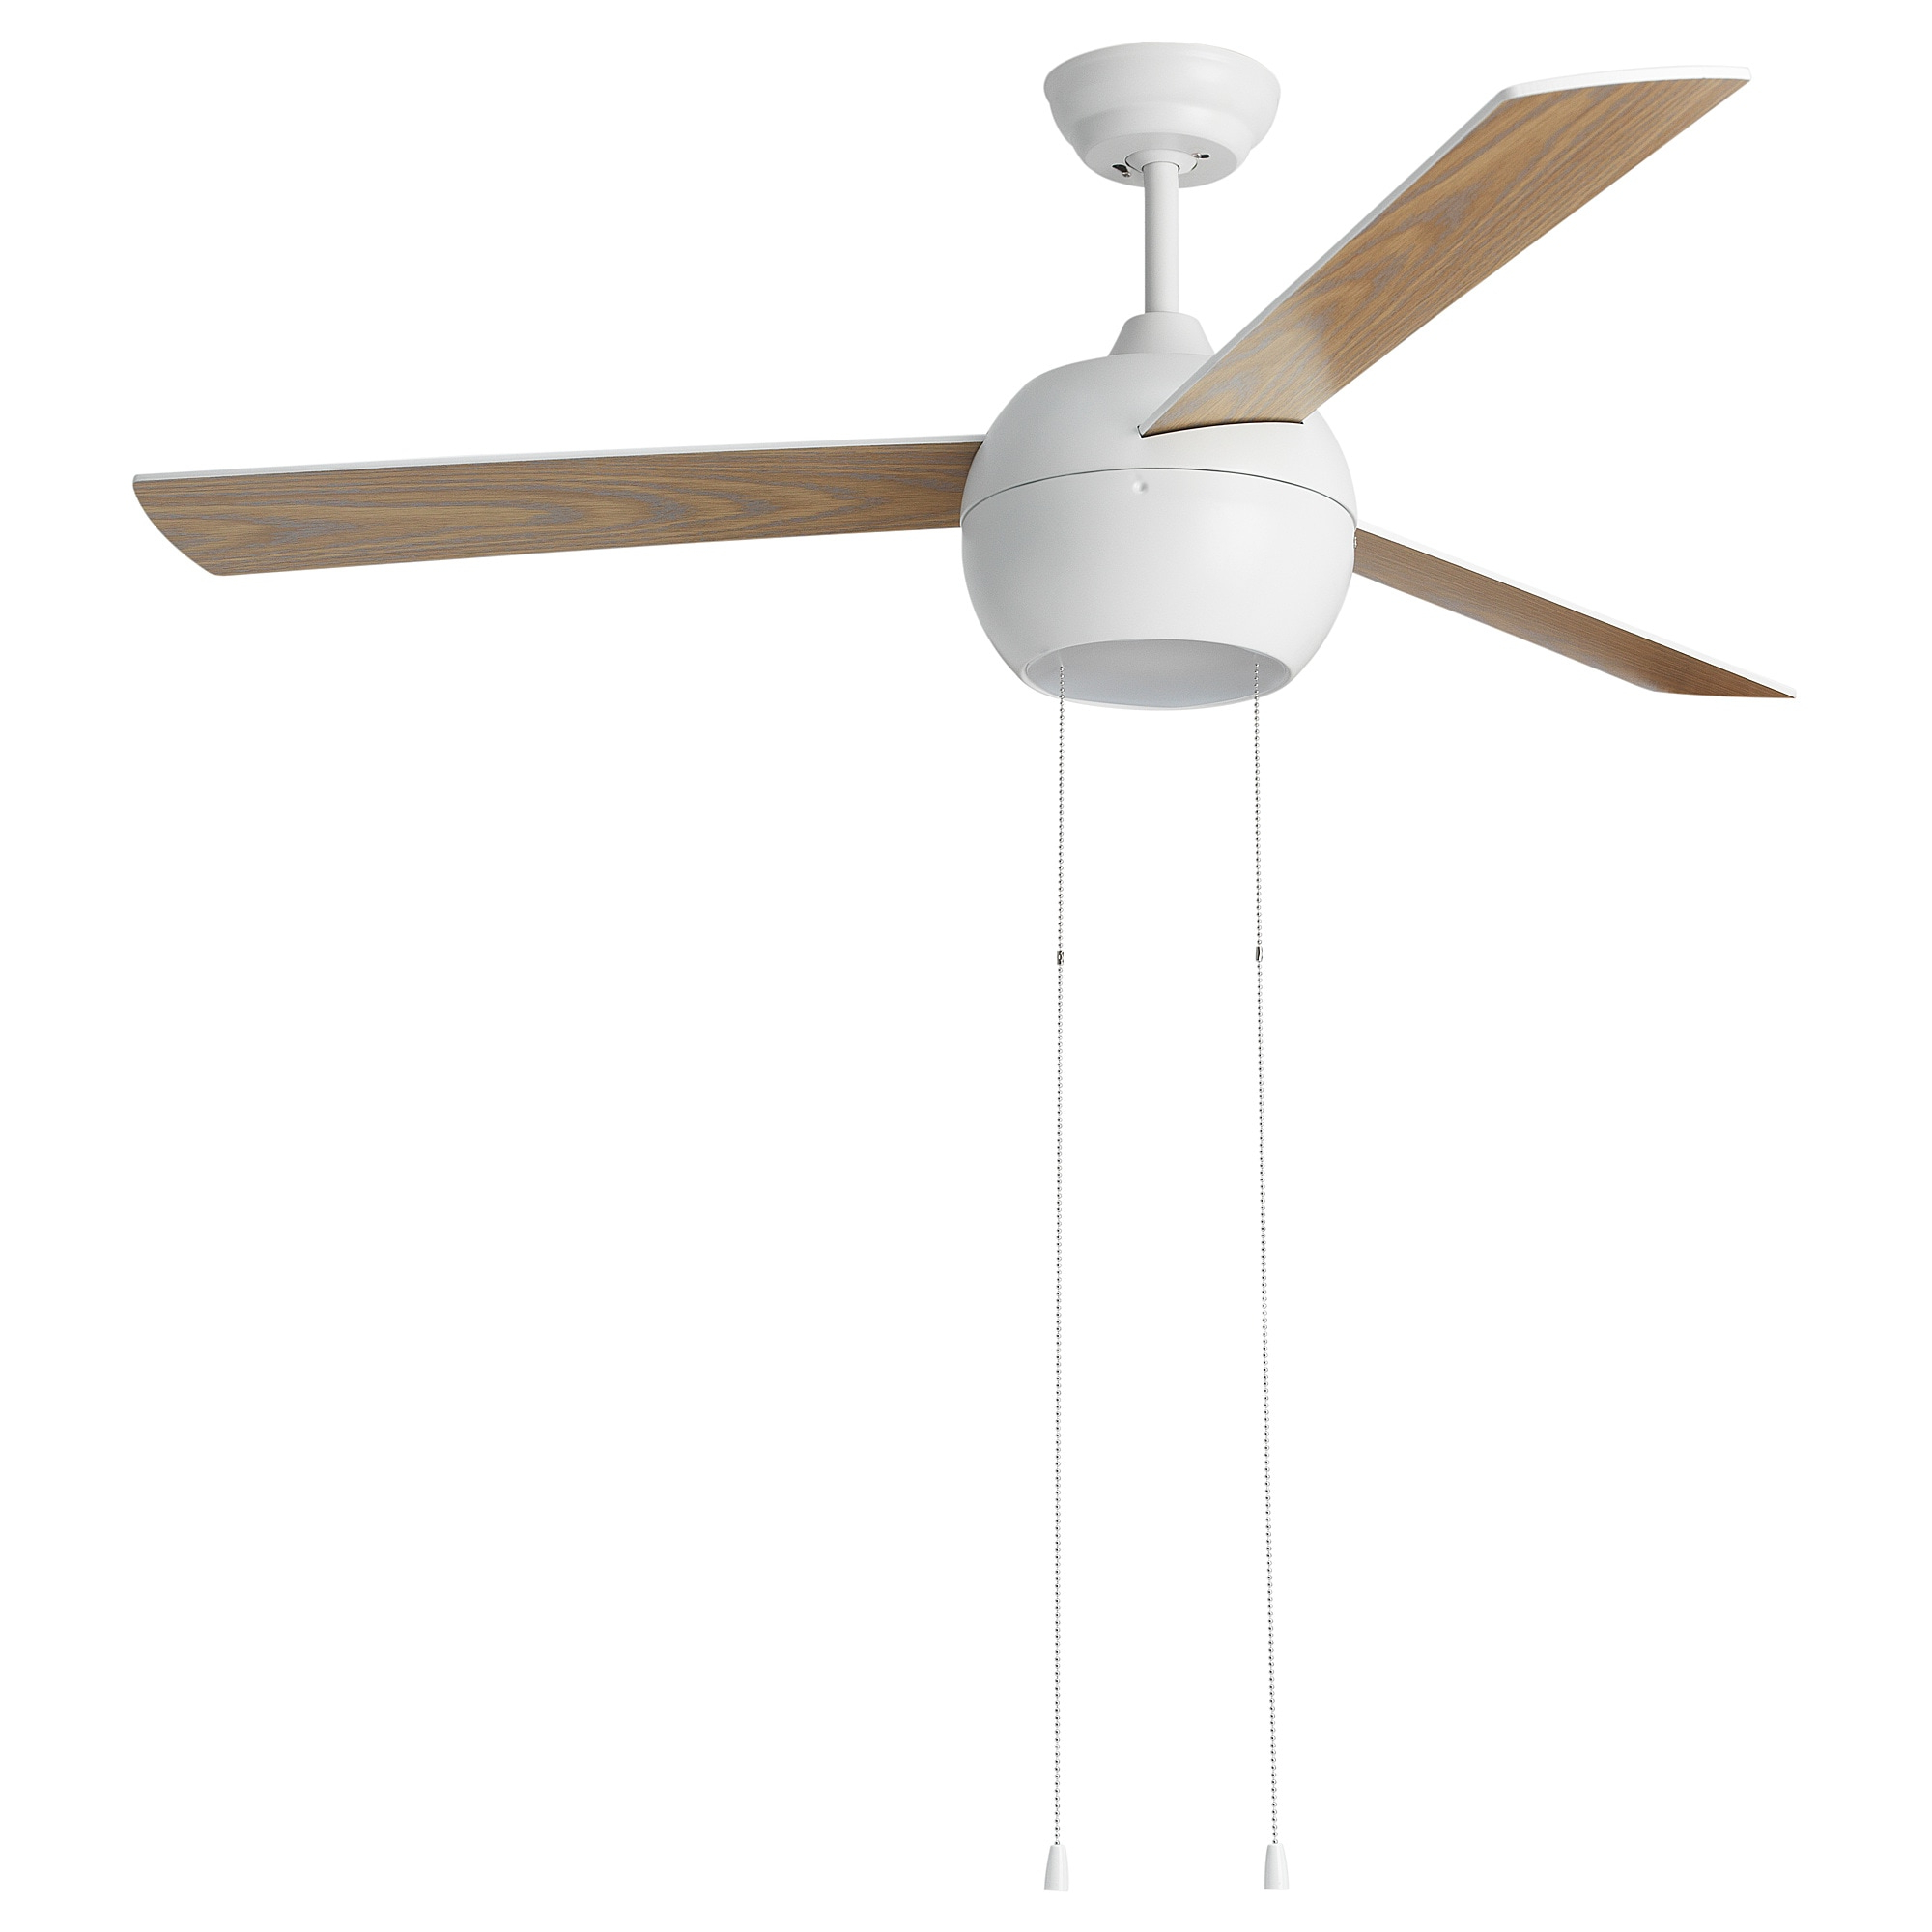 Stormvind 3 Blade Ceiling Fan With Light, Regarding Most Current Quebec 5 Blade Ceiling Fans (View 13 of 20)